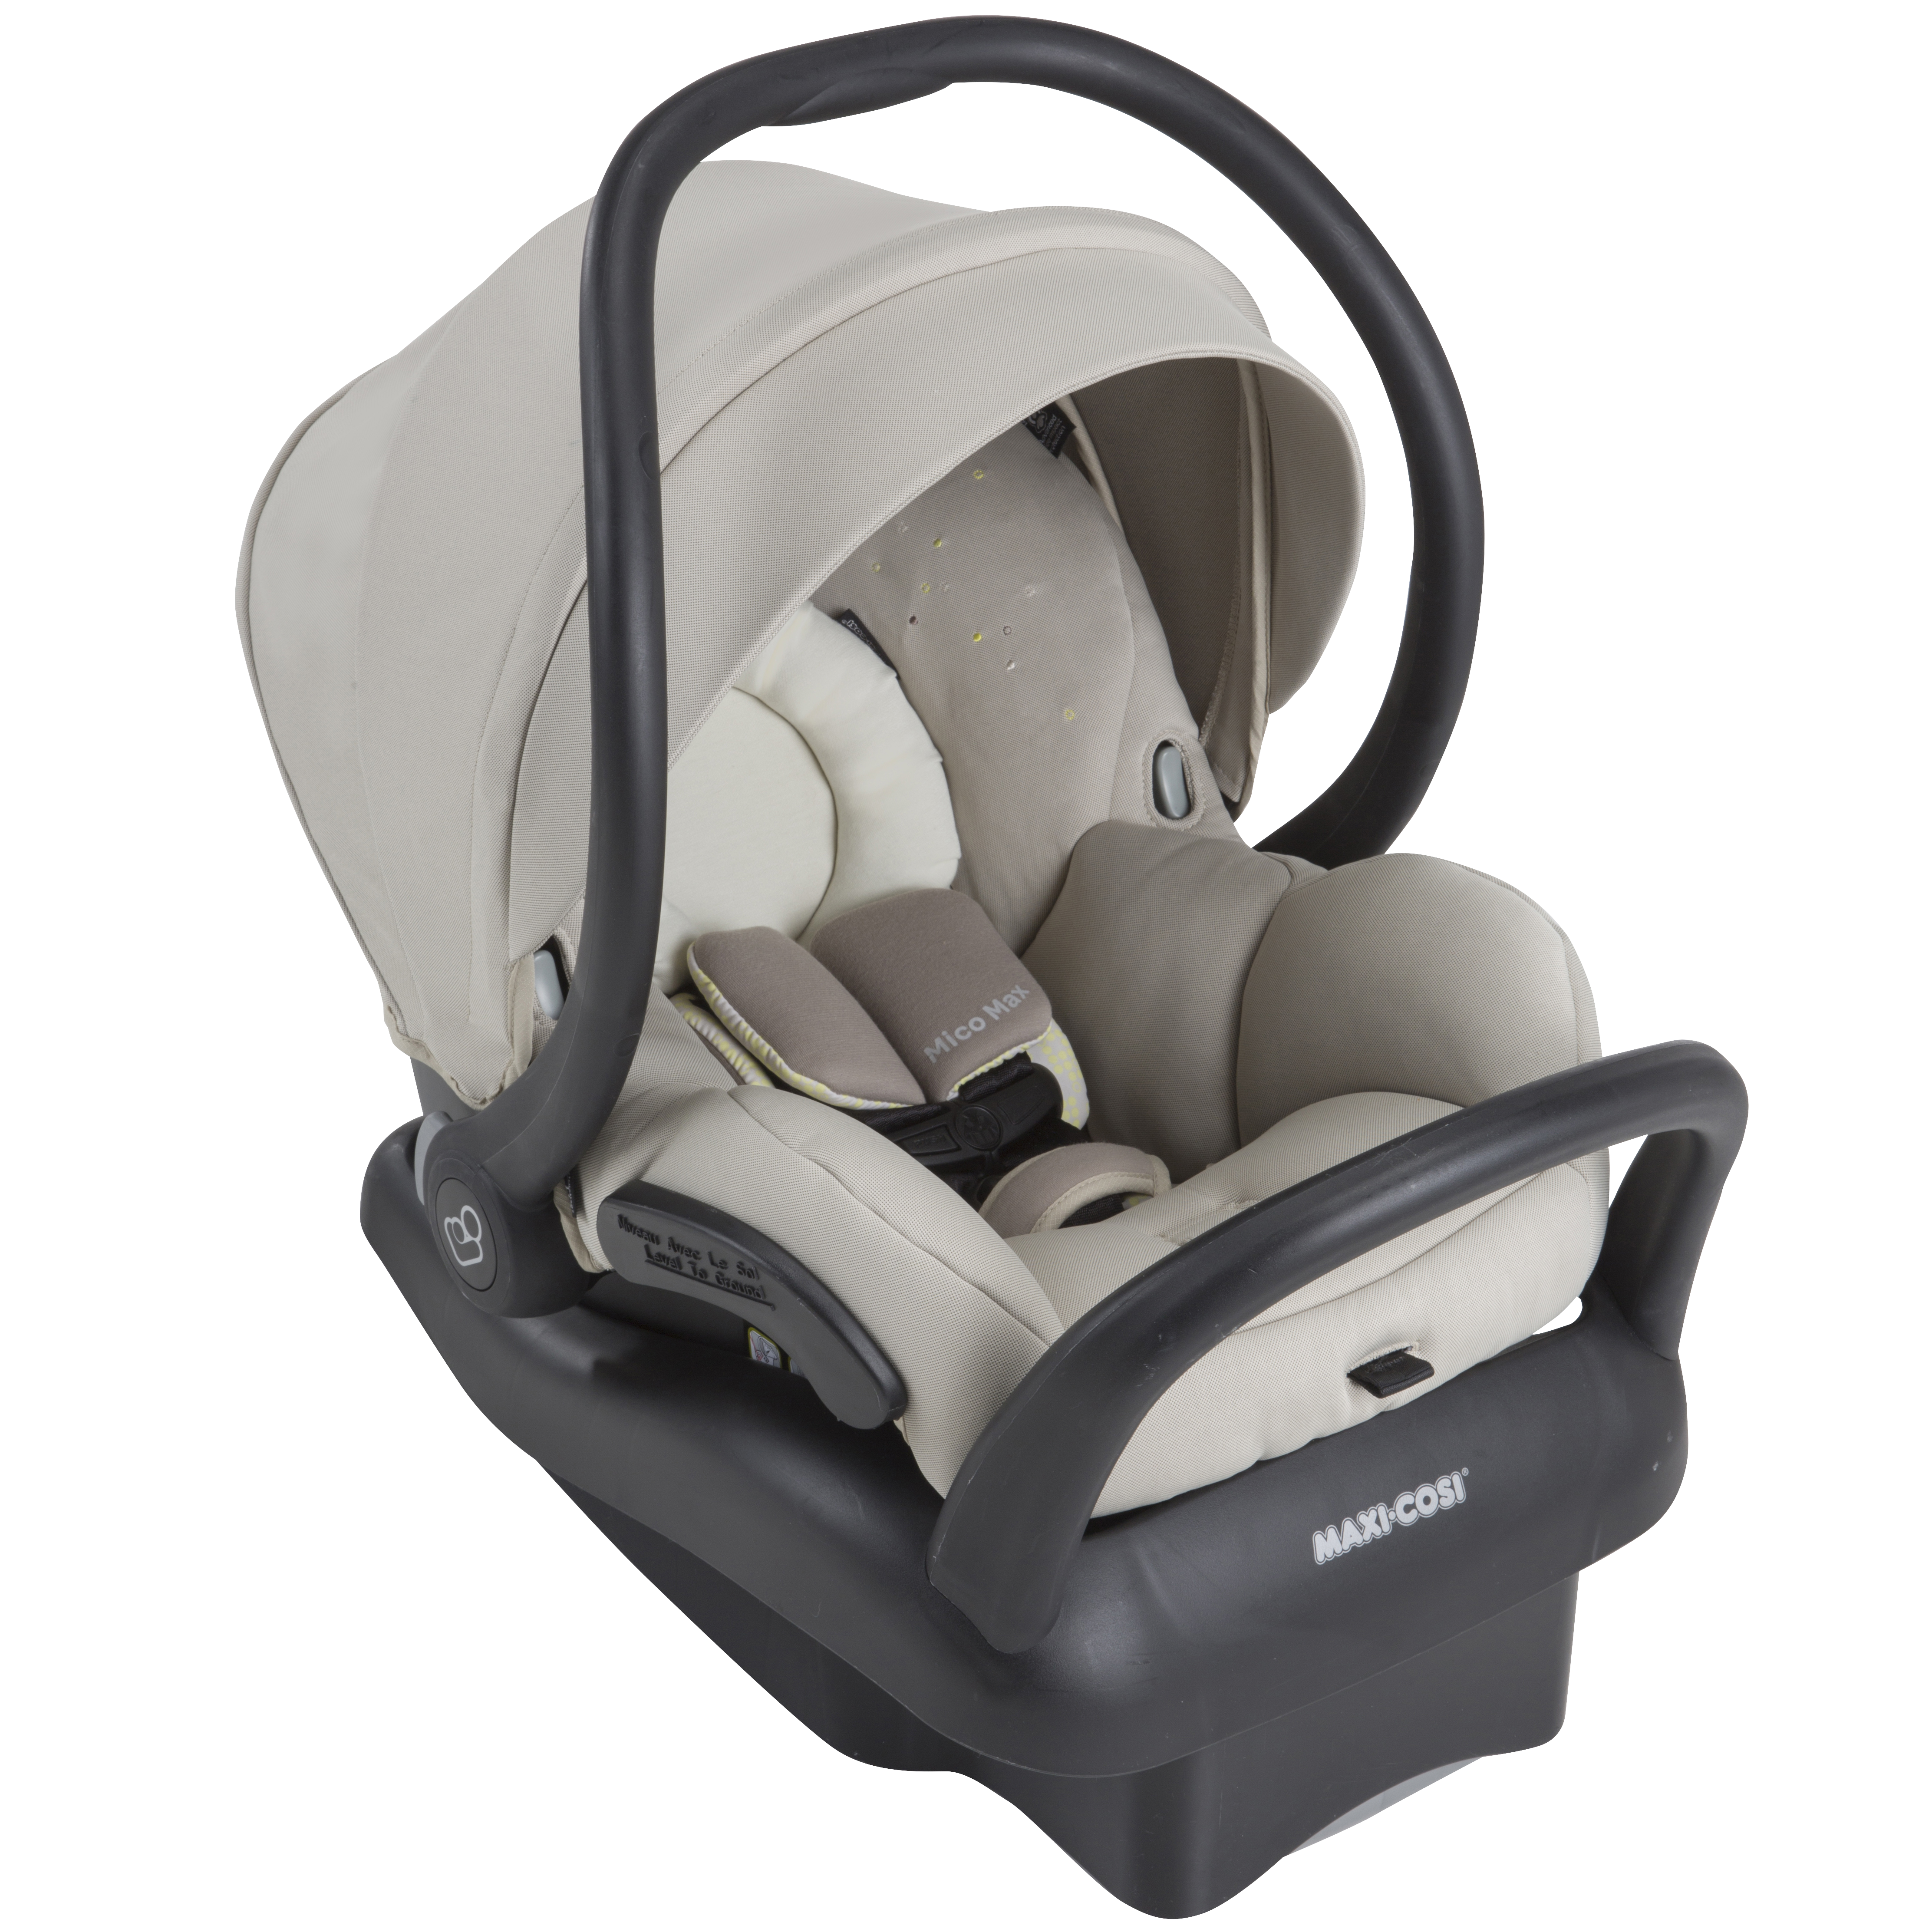 Maxi Cosi Mico Max 30 Infant Car Seat, Moon Birch